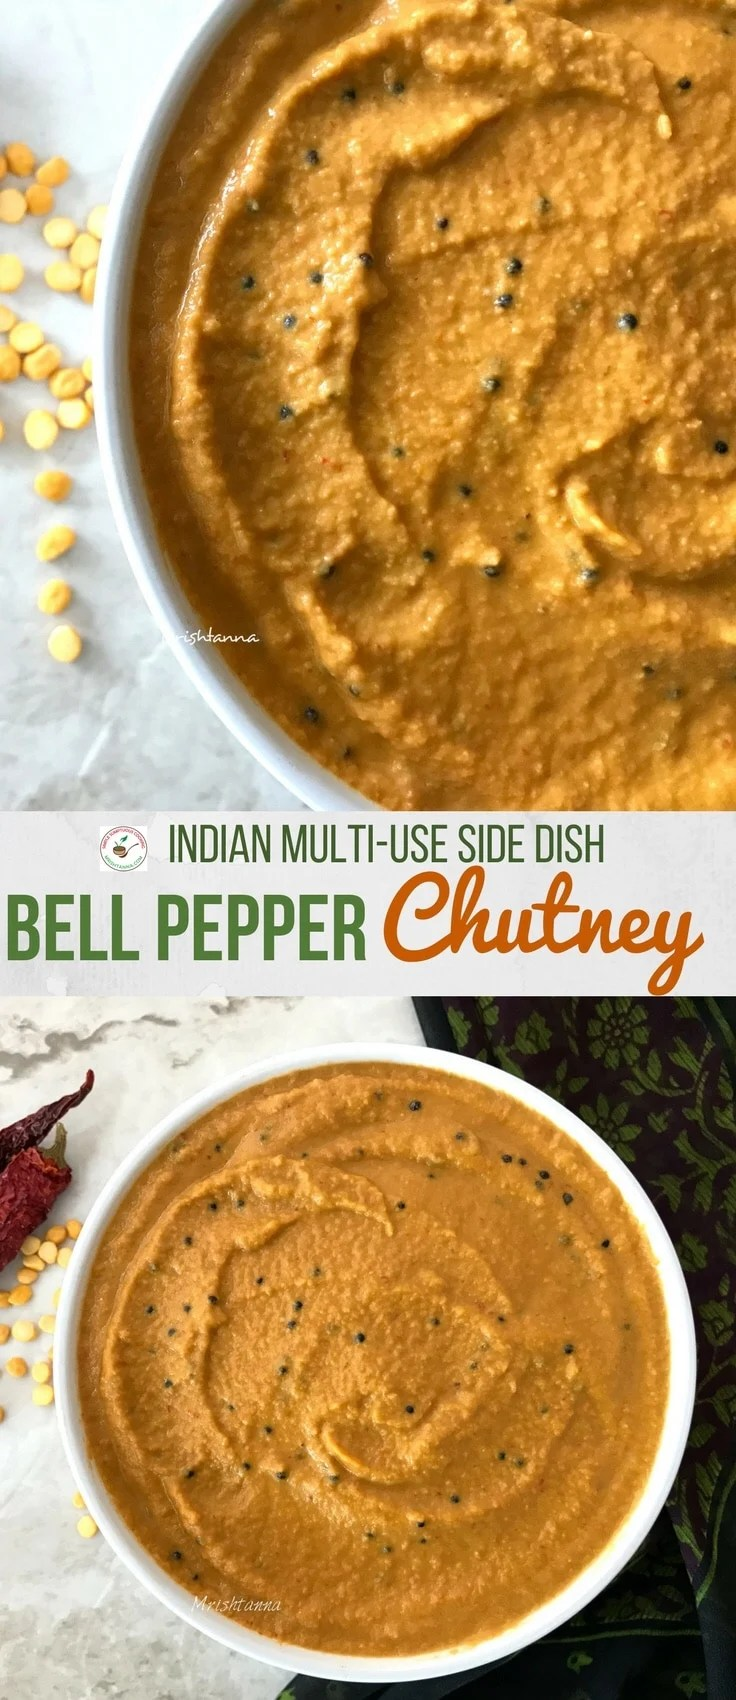 Bell Pepper Chutney Recipe